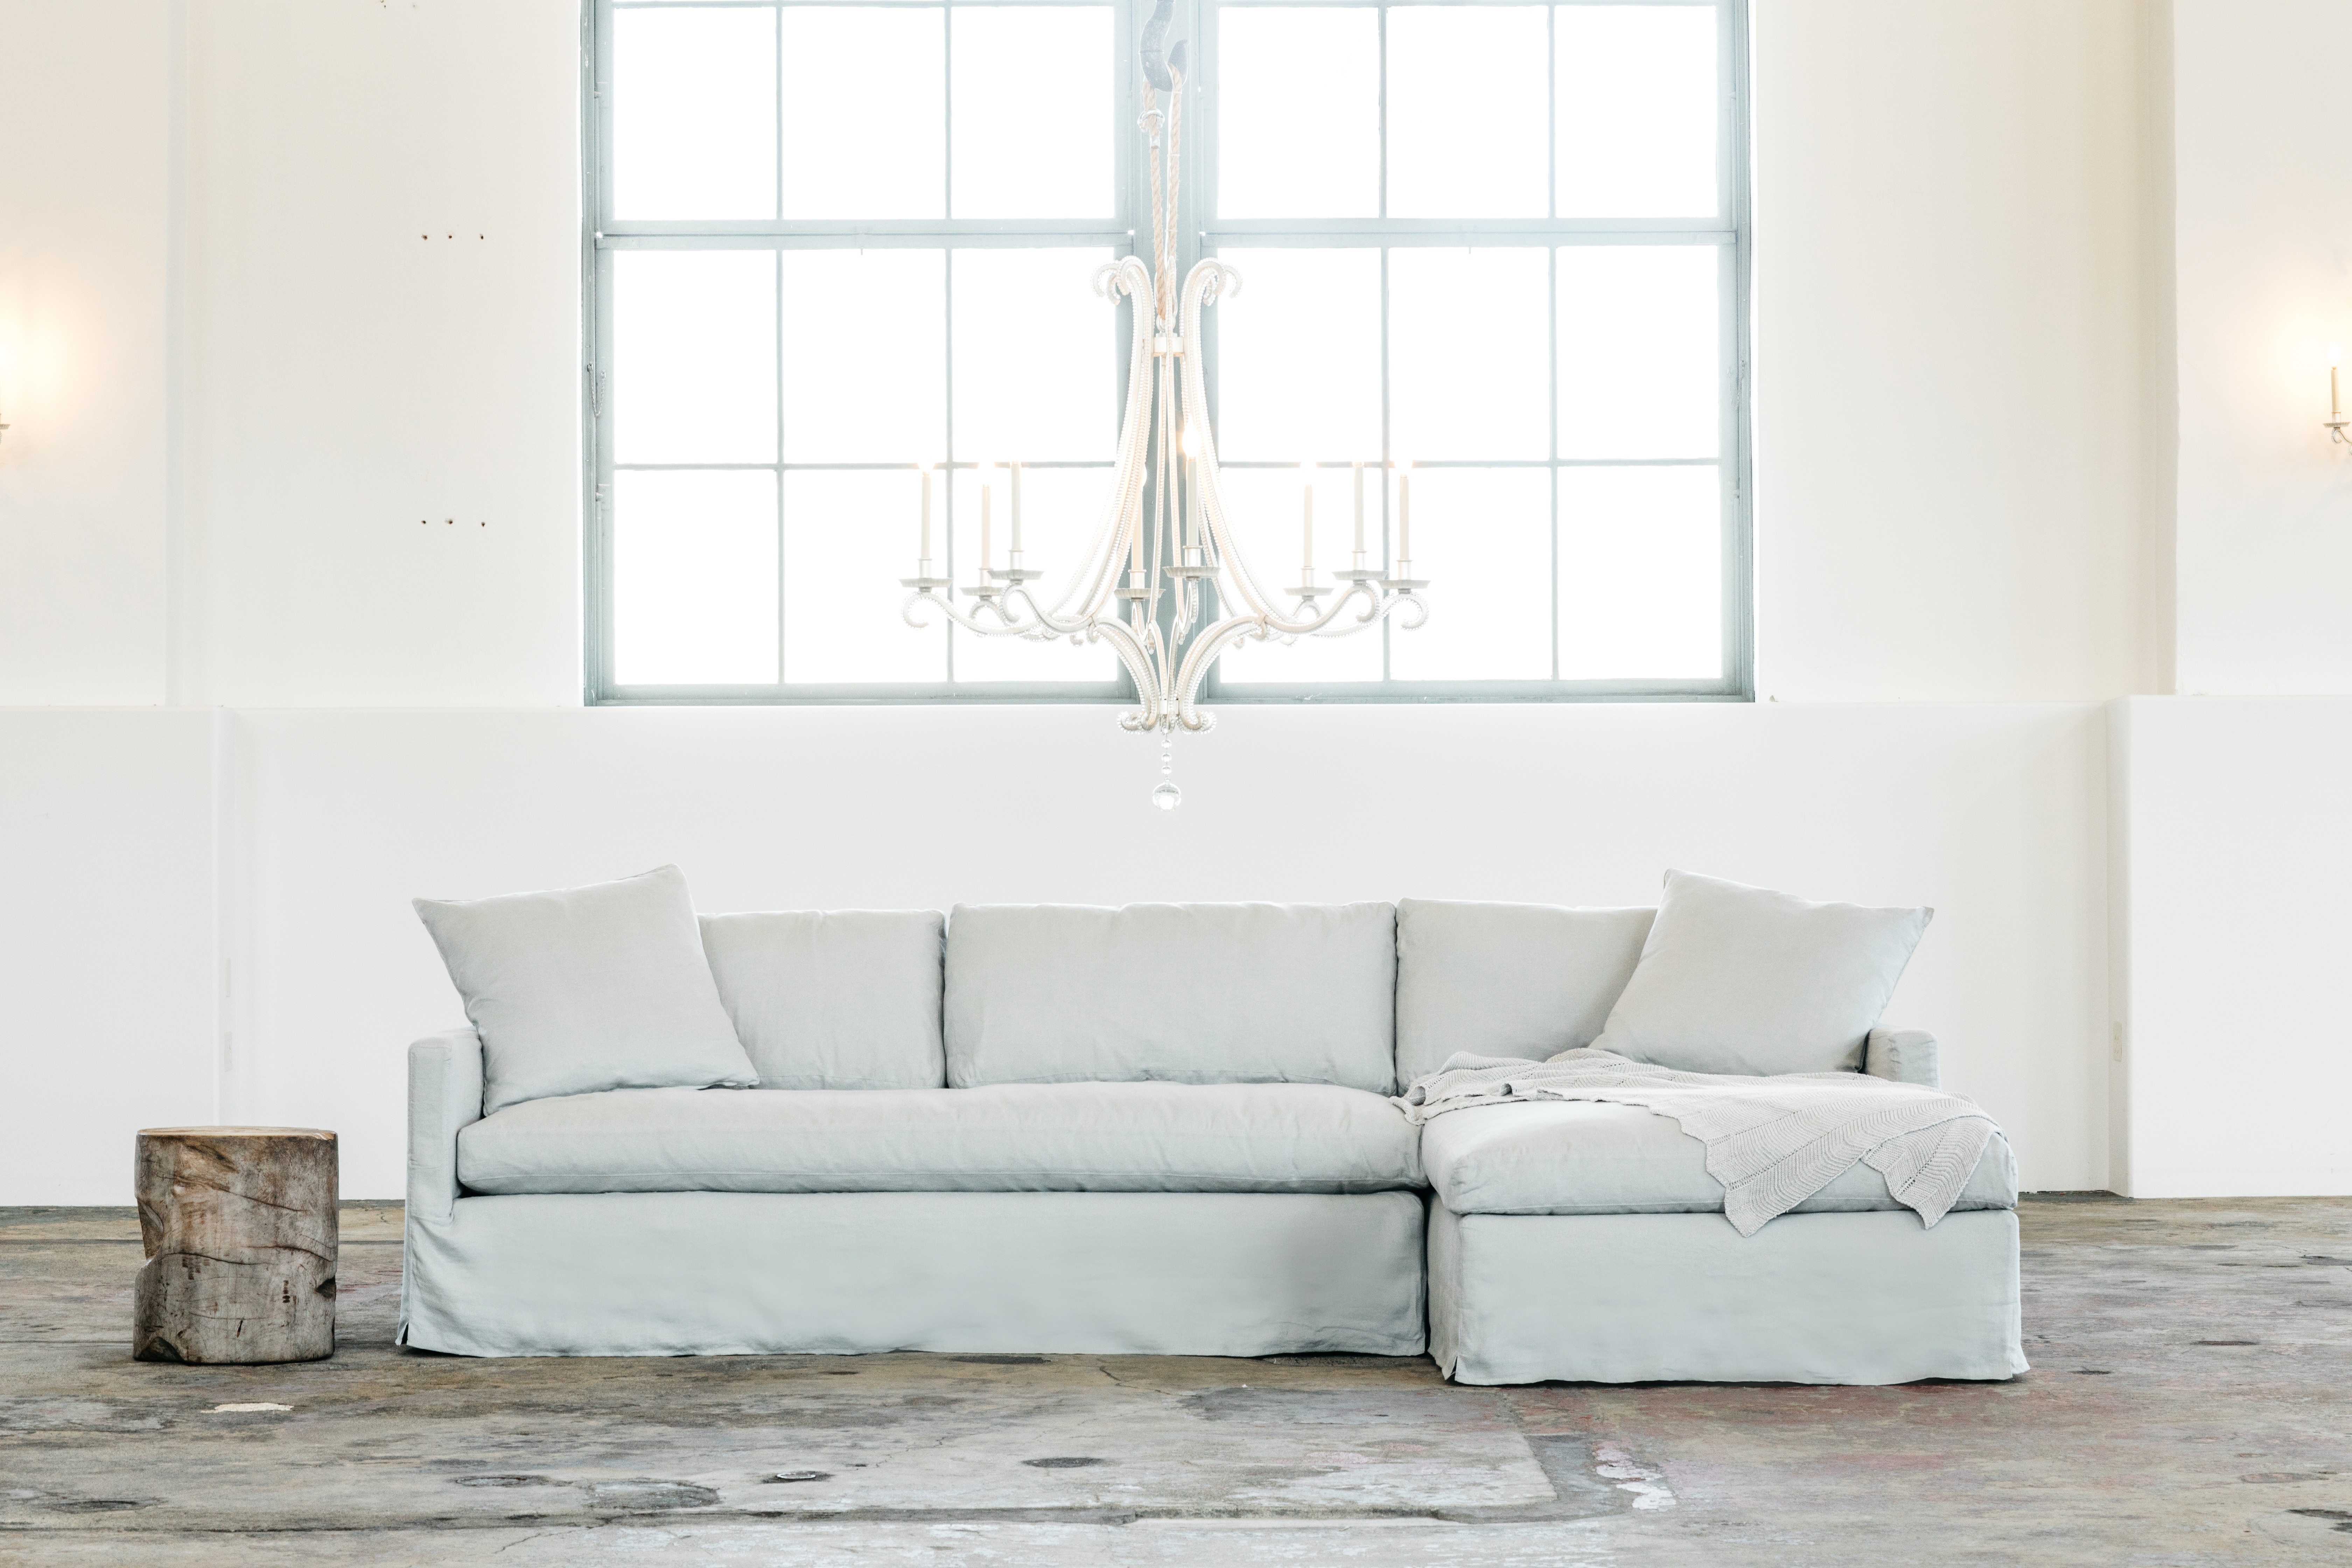 Sofa Take Home Today Popular Sofa Styles Of 2018 Designer Tips To Help You Decide